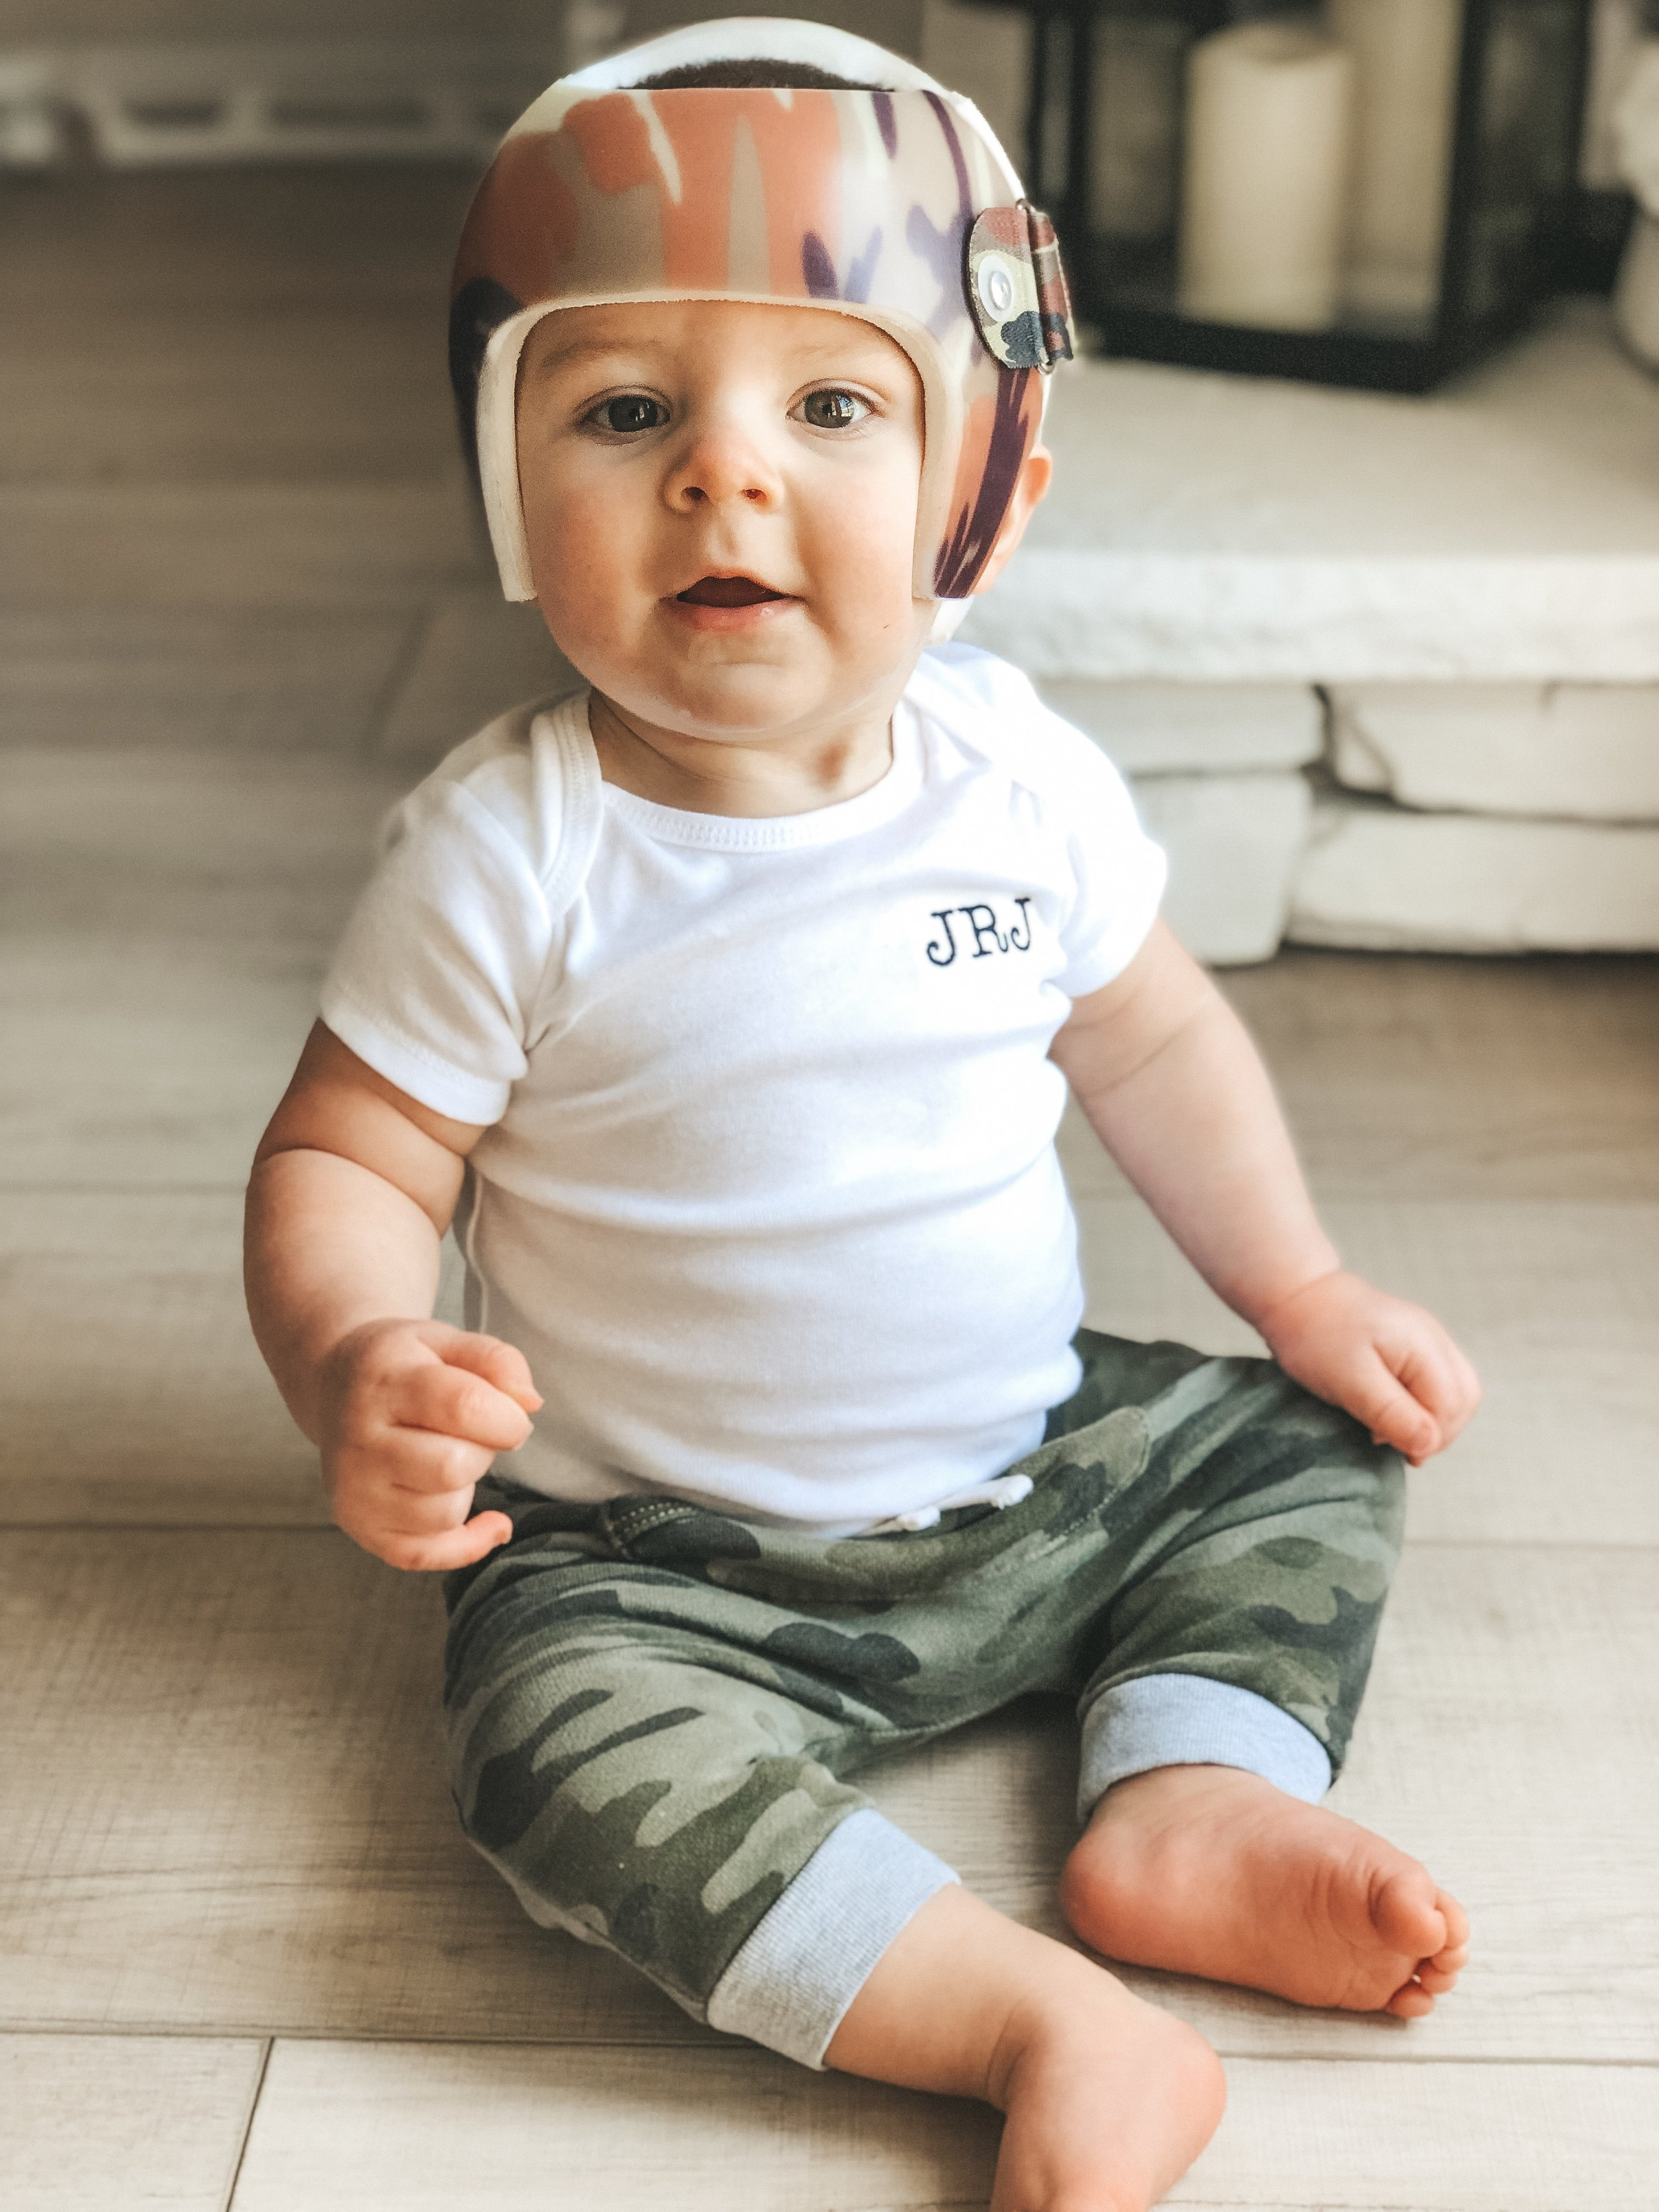 Jett Jones 10 months old.  Monogrammed onesies for babies.  Camo joggers from baby Gap.  Camo starband helmet from Hangar clinic. Helmet treatment for flat head. Plagiocephaly treatment.